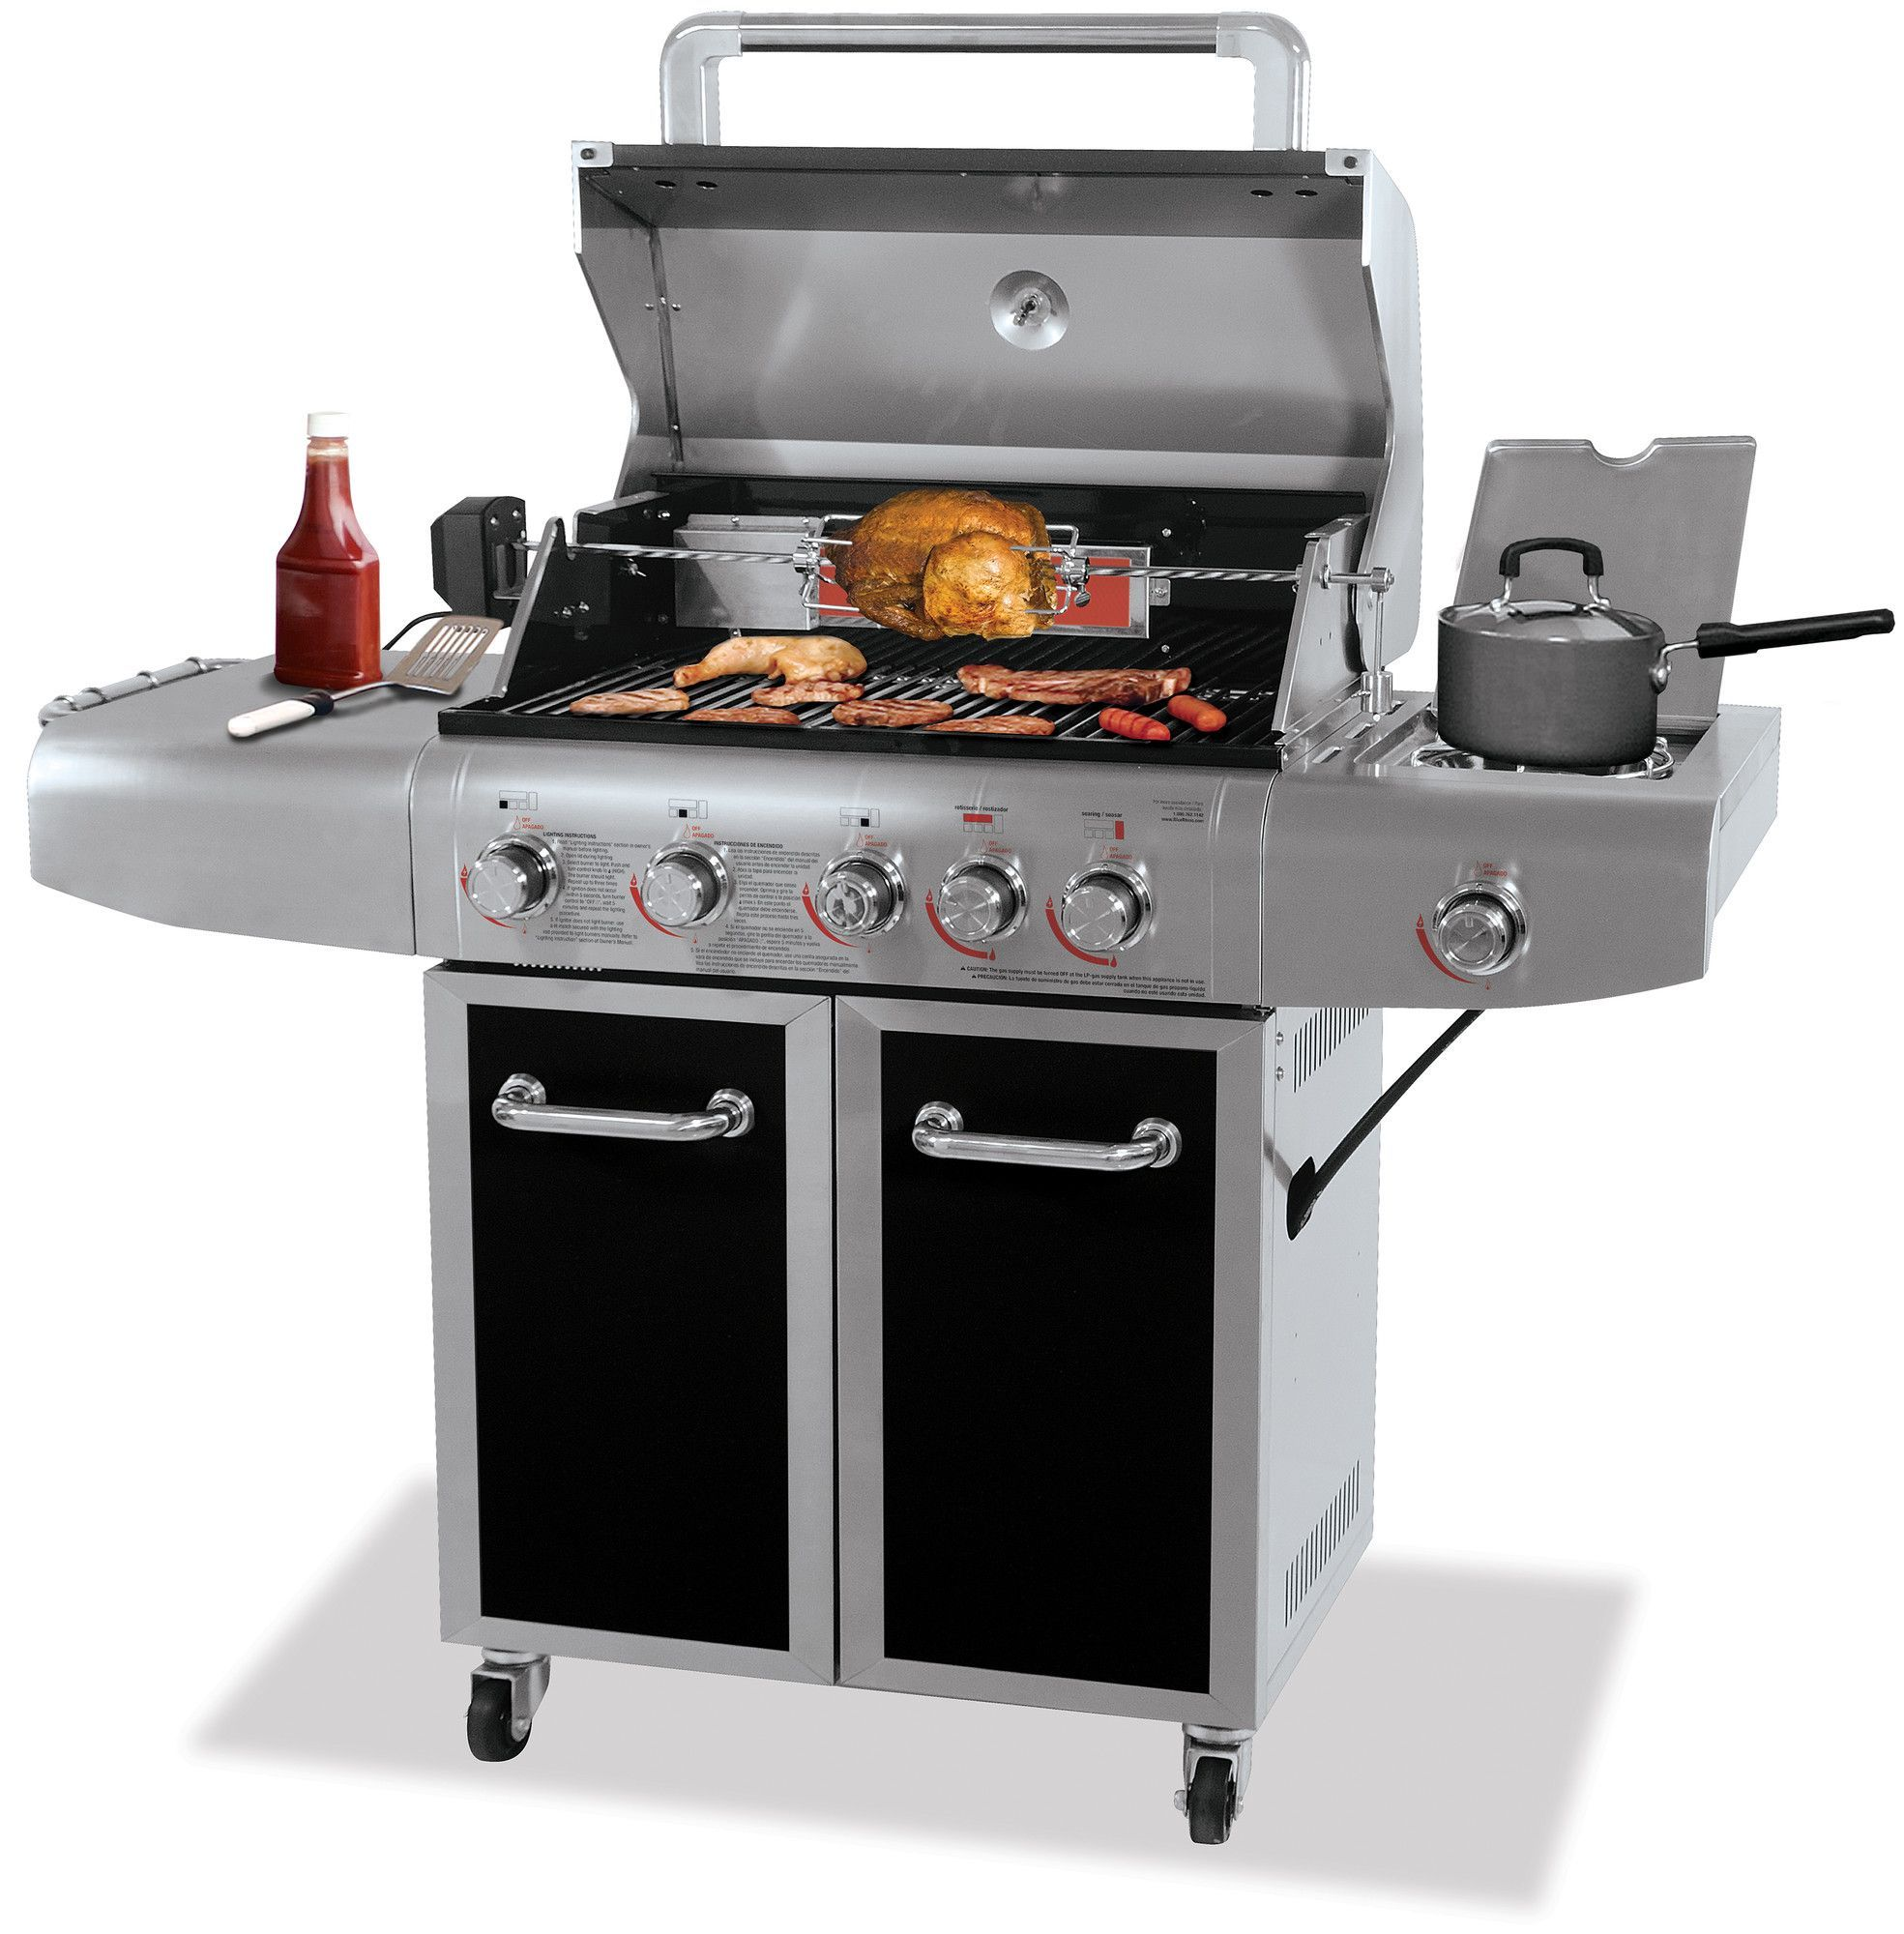 lp gas barbecue grill barbecue pinterest gas barbecue grill